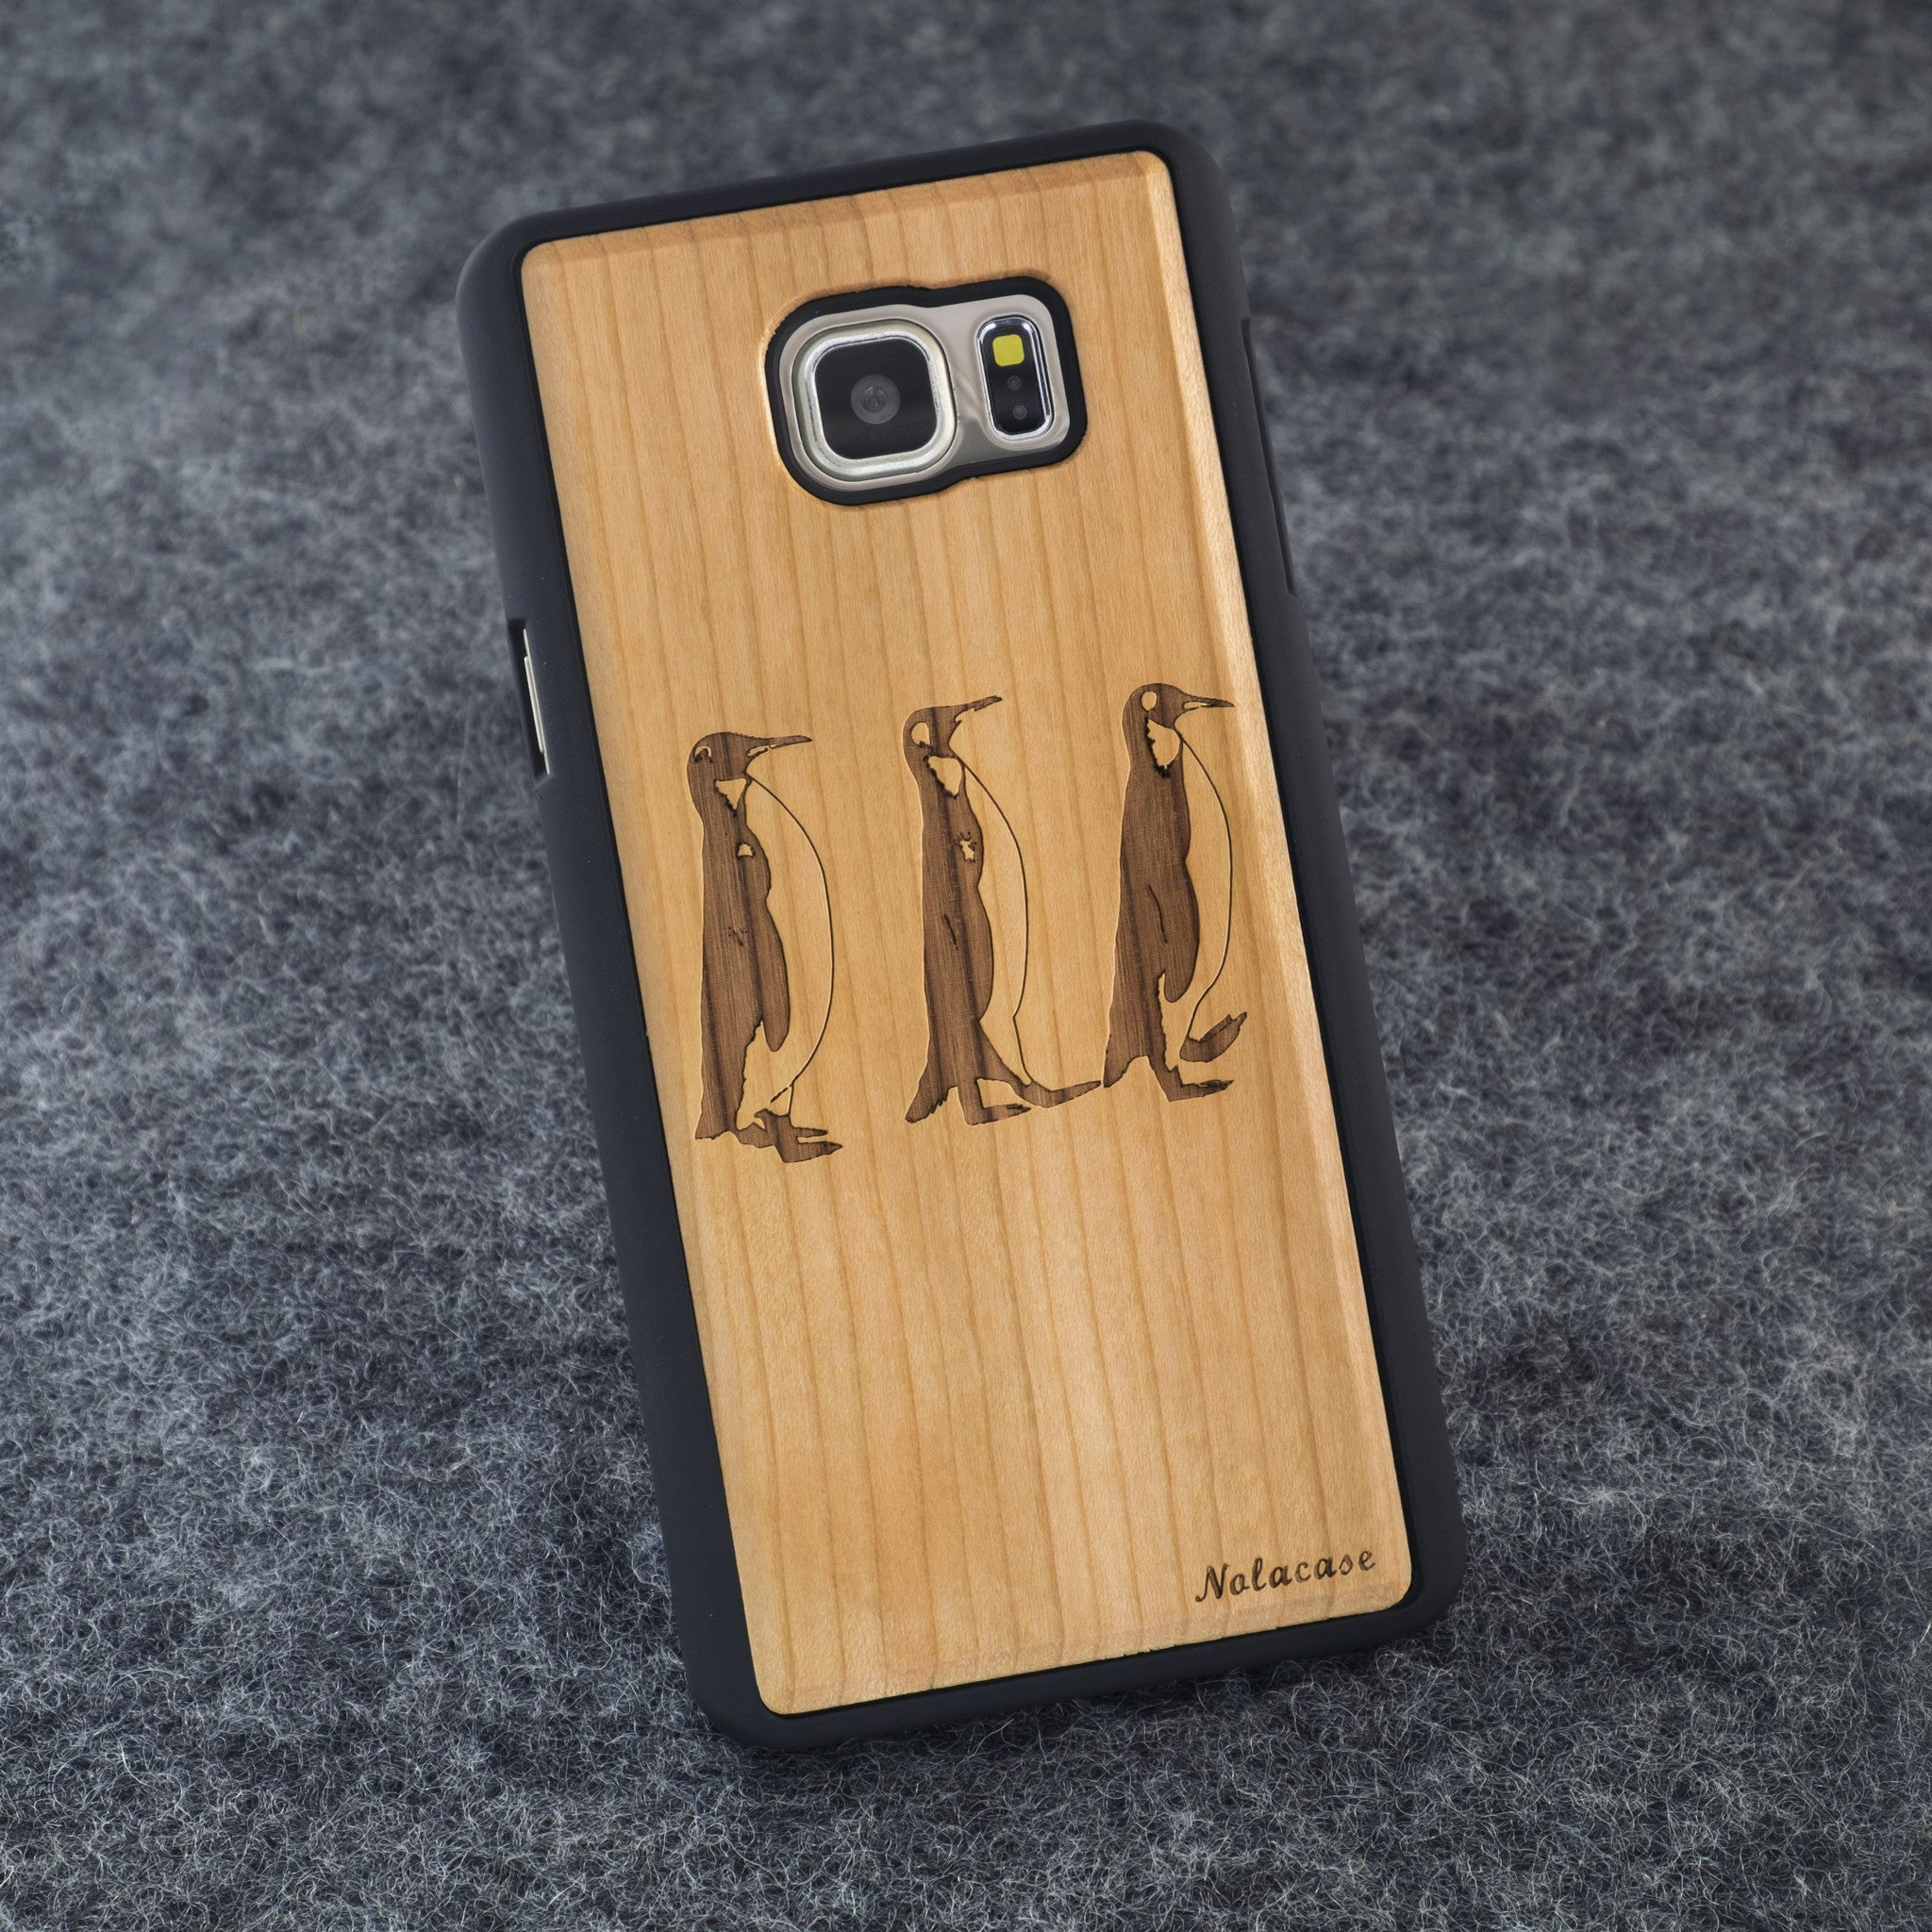 Samsung Note 5 Penguins Slim Wood Case - NOLACASE